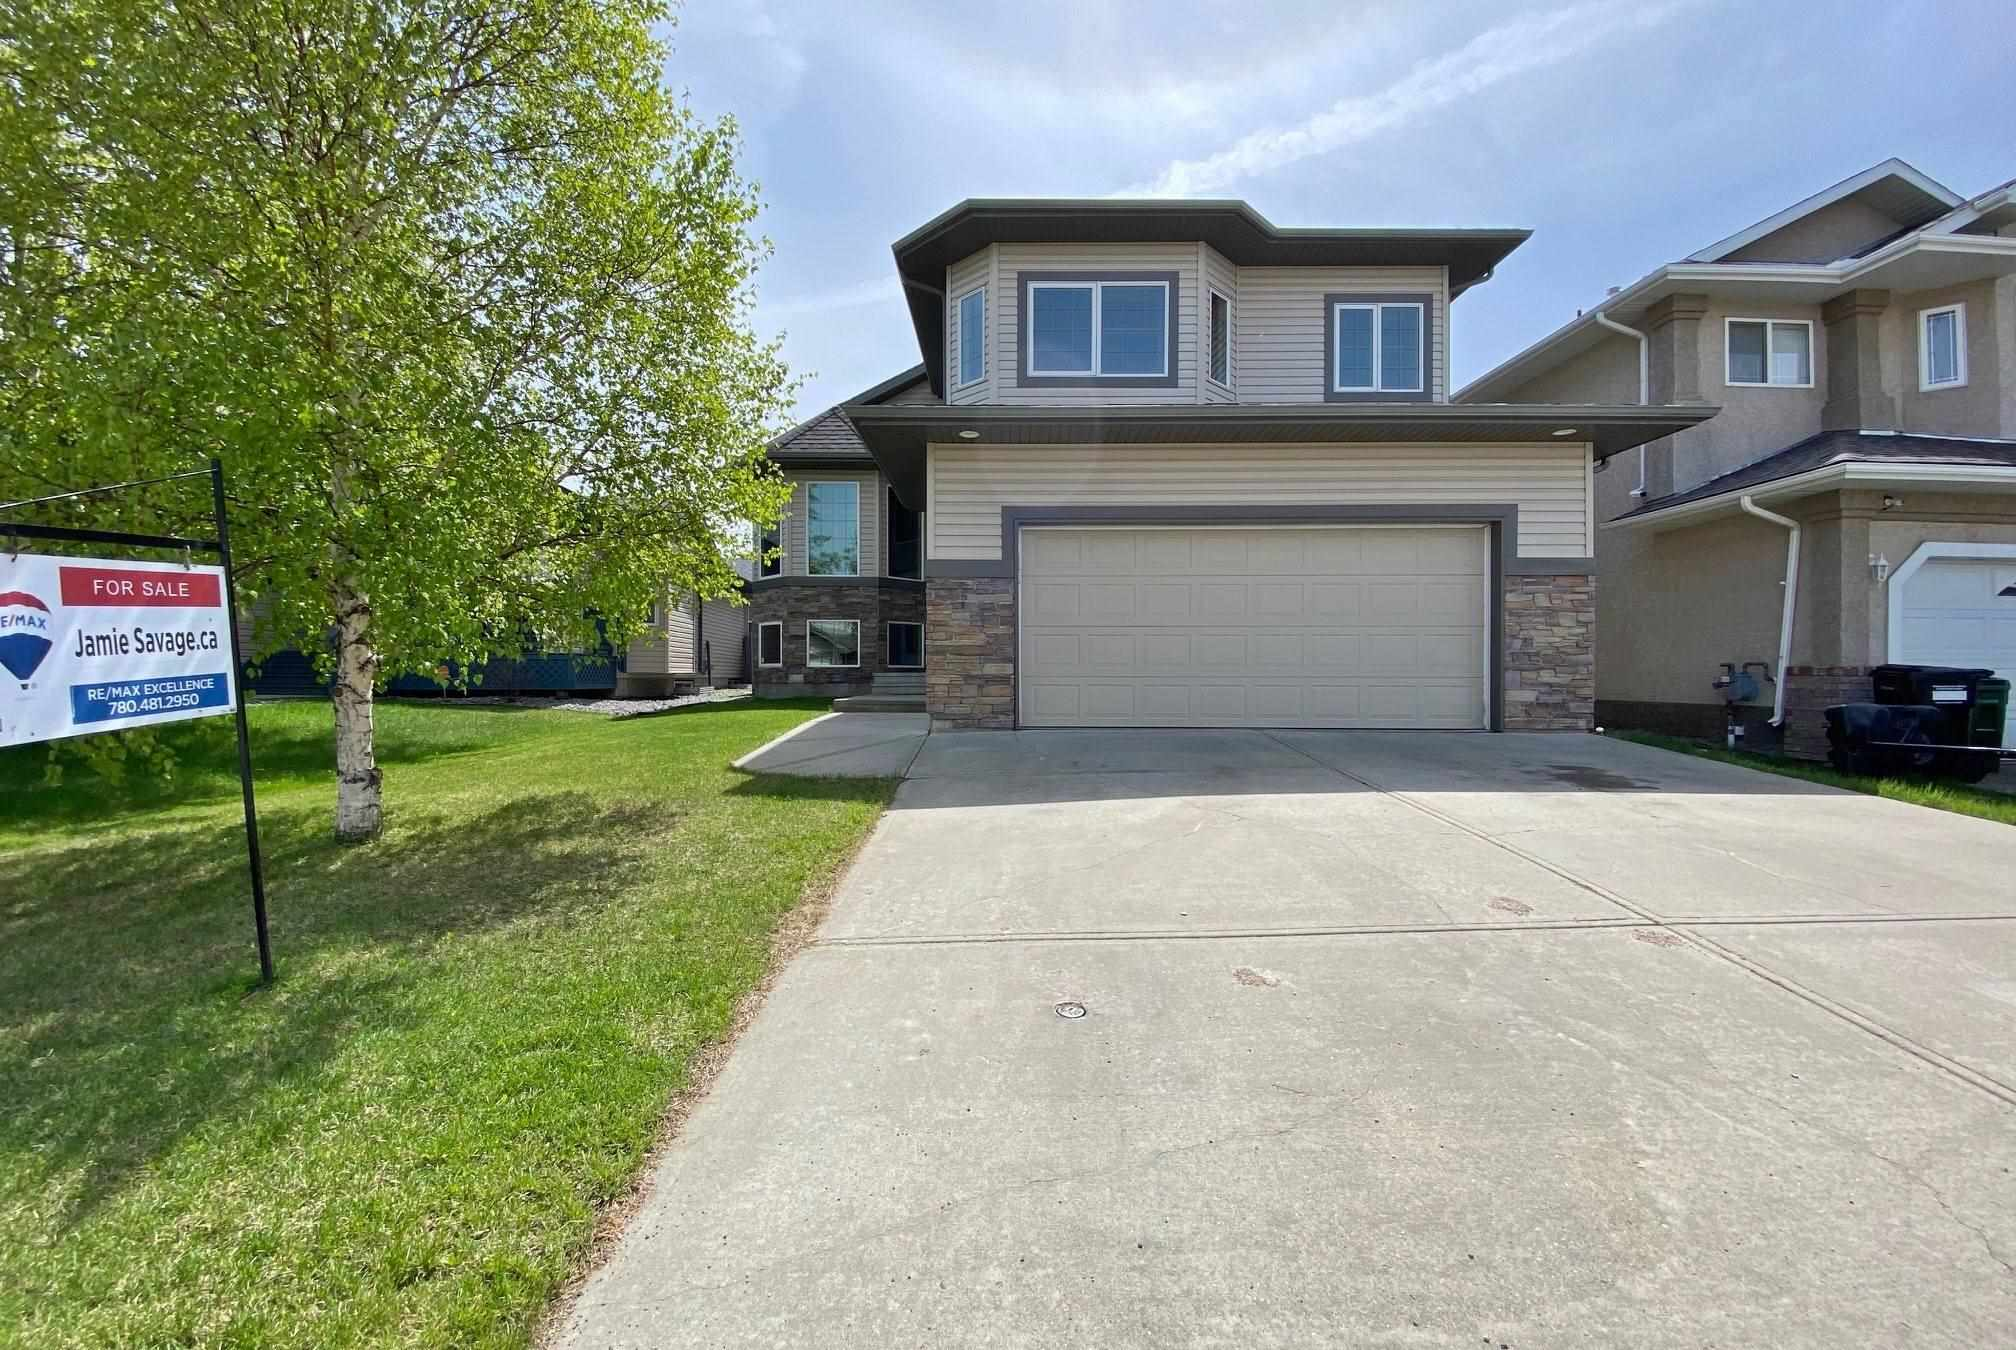 Your search is over! Welcome to this stunning 1,800 sq ft executive Bi-Level in the sought-after community of Chambery. Highlighted by the vaulted ceilings & big windows, the main level feels bright & open. The kitchen feat a large center island w/ granite counters, maple cabinets, corner pantry, s/s appliances & gas stove. Cozy up to the beautiful stone FP in the spacious LR. Off the large breakfast nook is the huge maintenance free vinyl deck w/ a large covered eating area. Two good sized bedrooms, a laundry room & a 4 pc bath round out the main. Above the oversized Double Garage is the amazing master retreat that incl a large walk-in closet & lux ensuite w/ steam shower. The fully finished basement features 9ft ceilings, a large rec room w/ corner gas fireplace, another 4 pc bath, plus two more bedrooms! Other upgrades incl: custom wood shutters, built in speakers on the main & theatre system rough-in in the basement. Walking distance to parks, playgrounds & public transportation. This is the one!